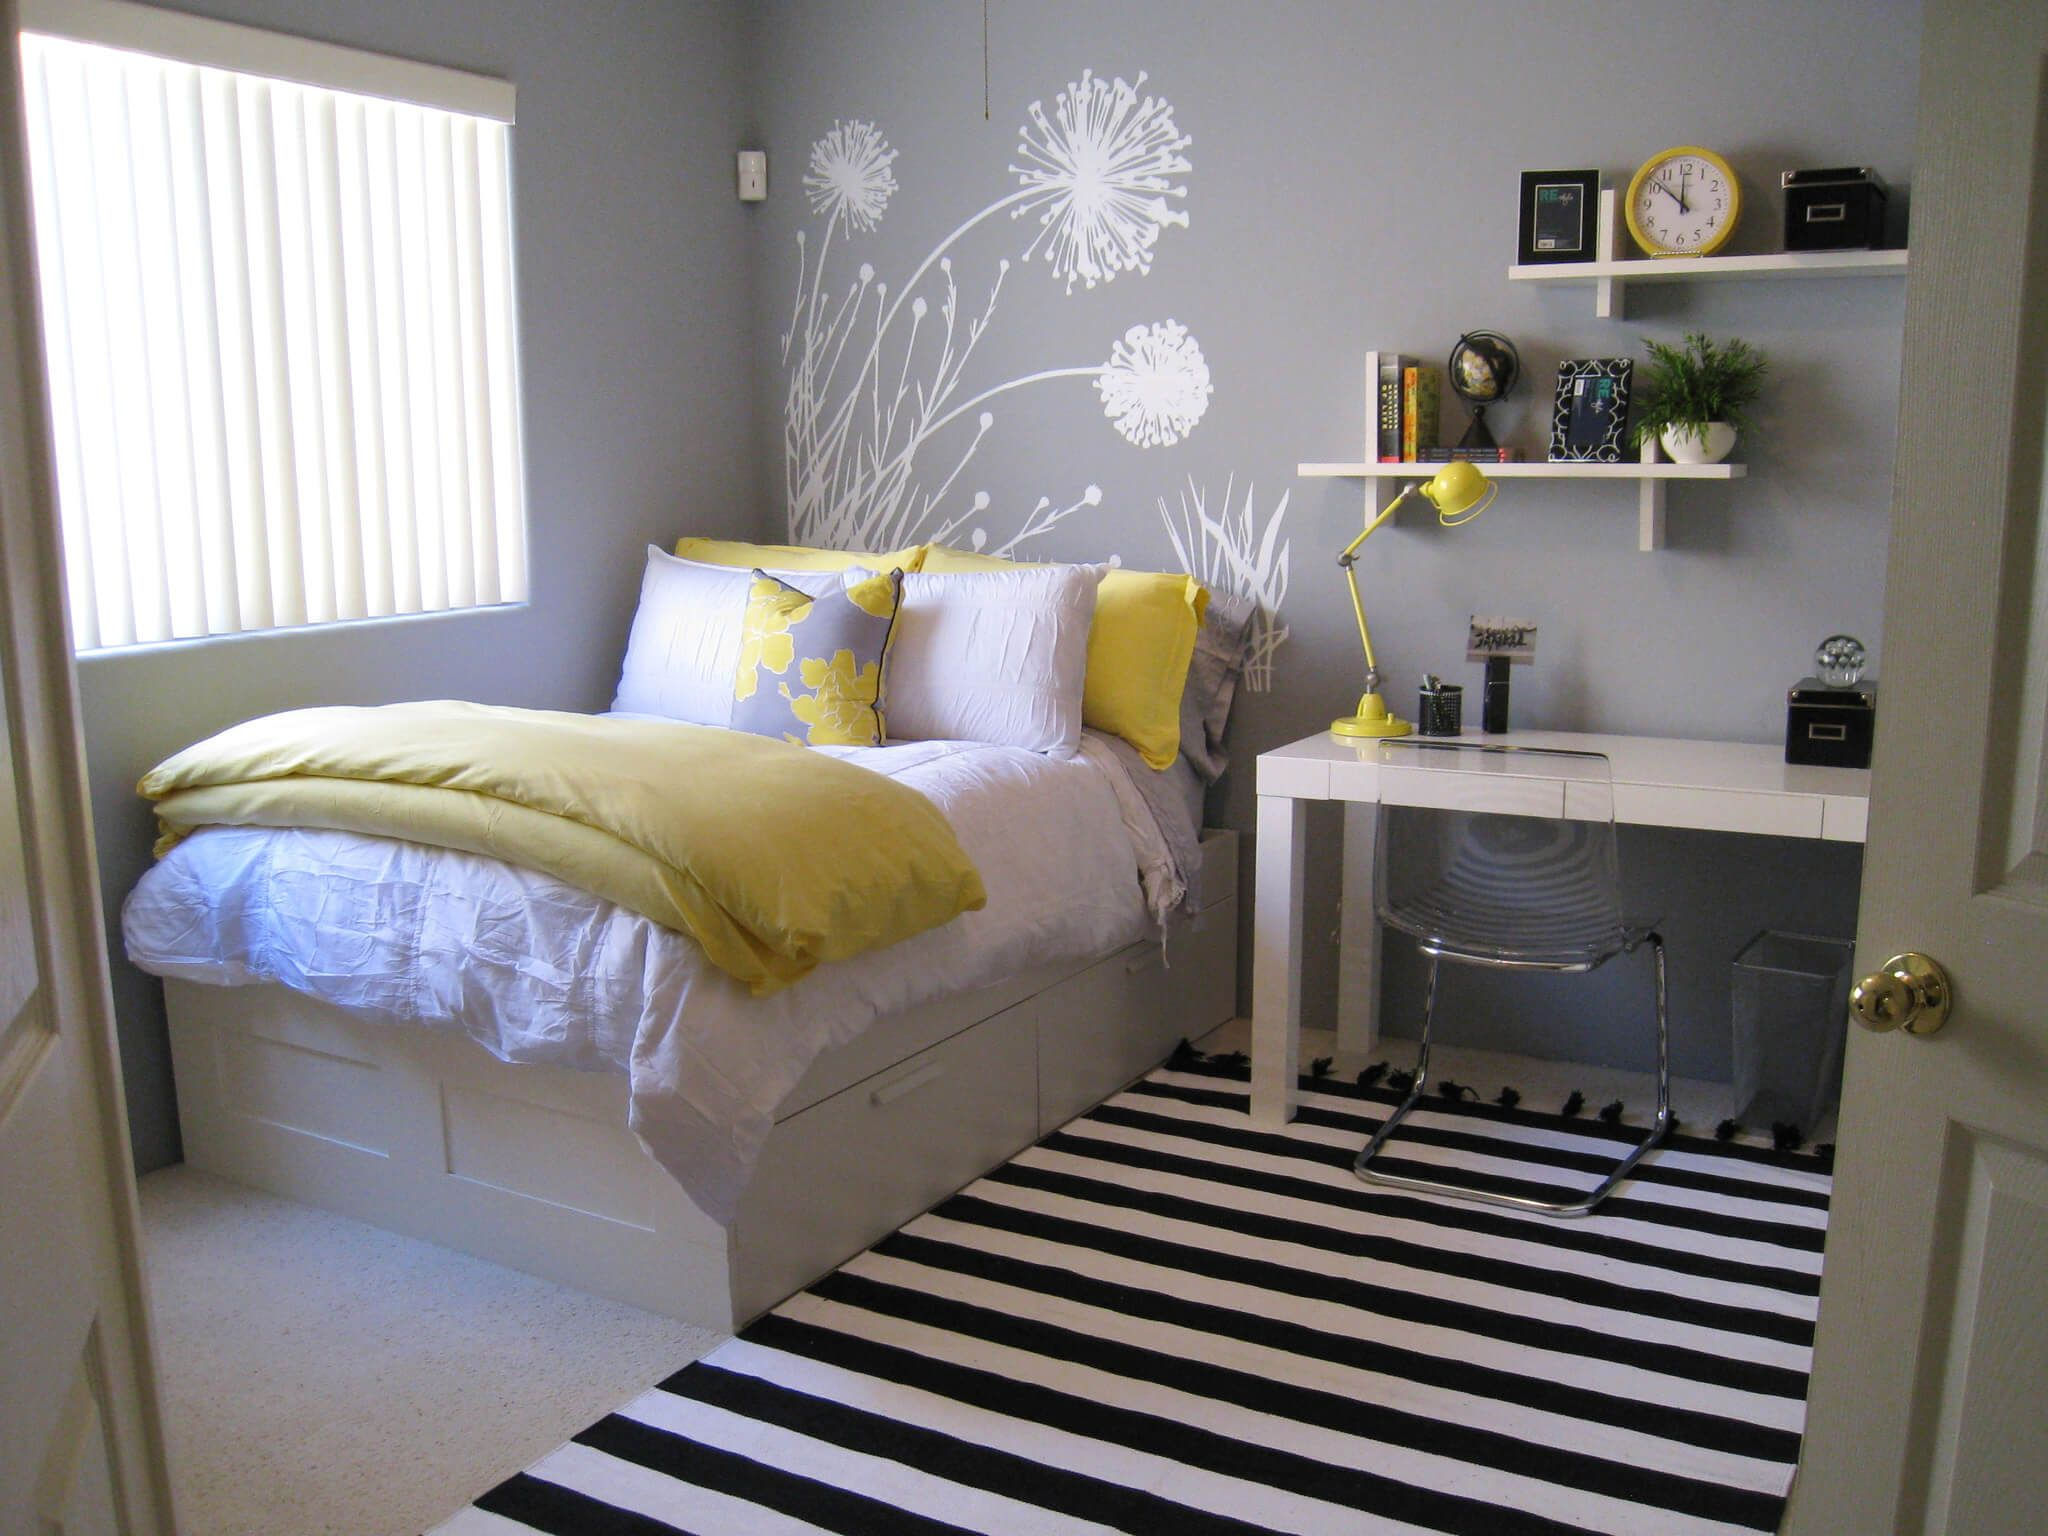 45 Inspiring Small Bedrooms More. 17 Best ideas about Decorating Small Bedrooms on Pinterest   Small